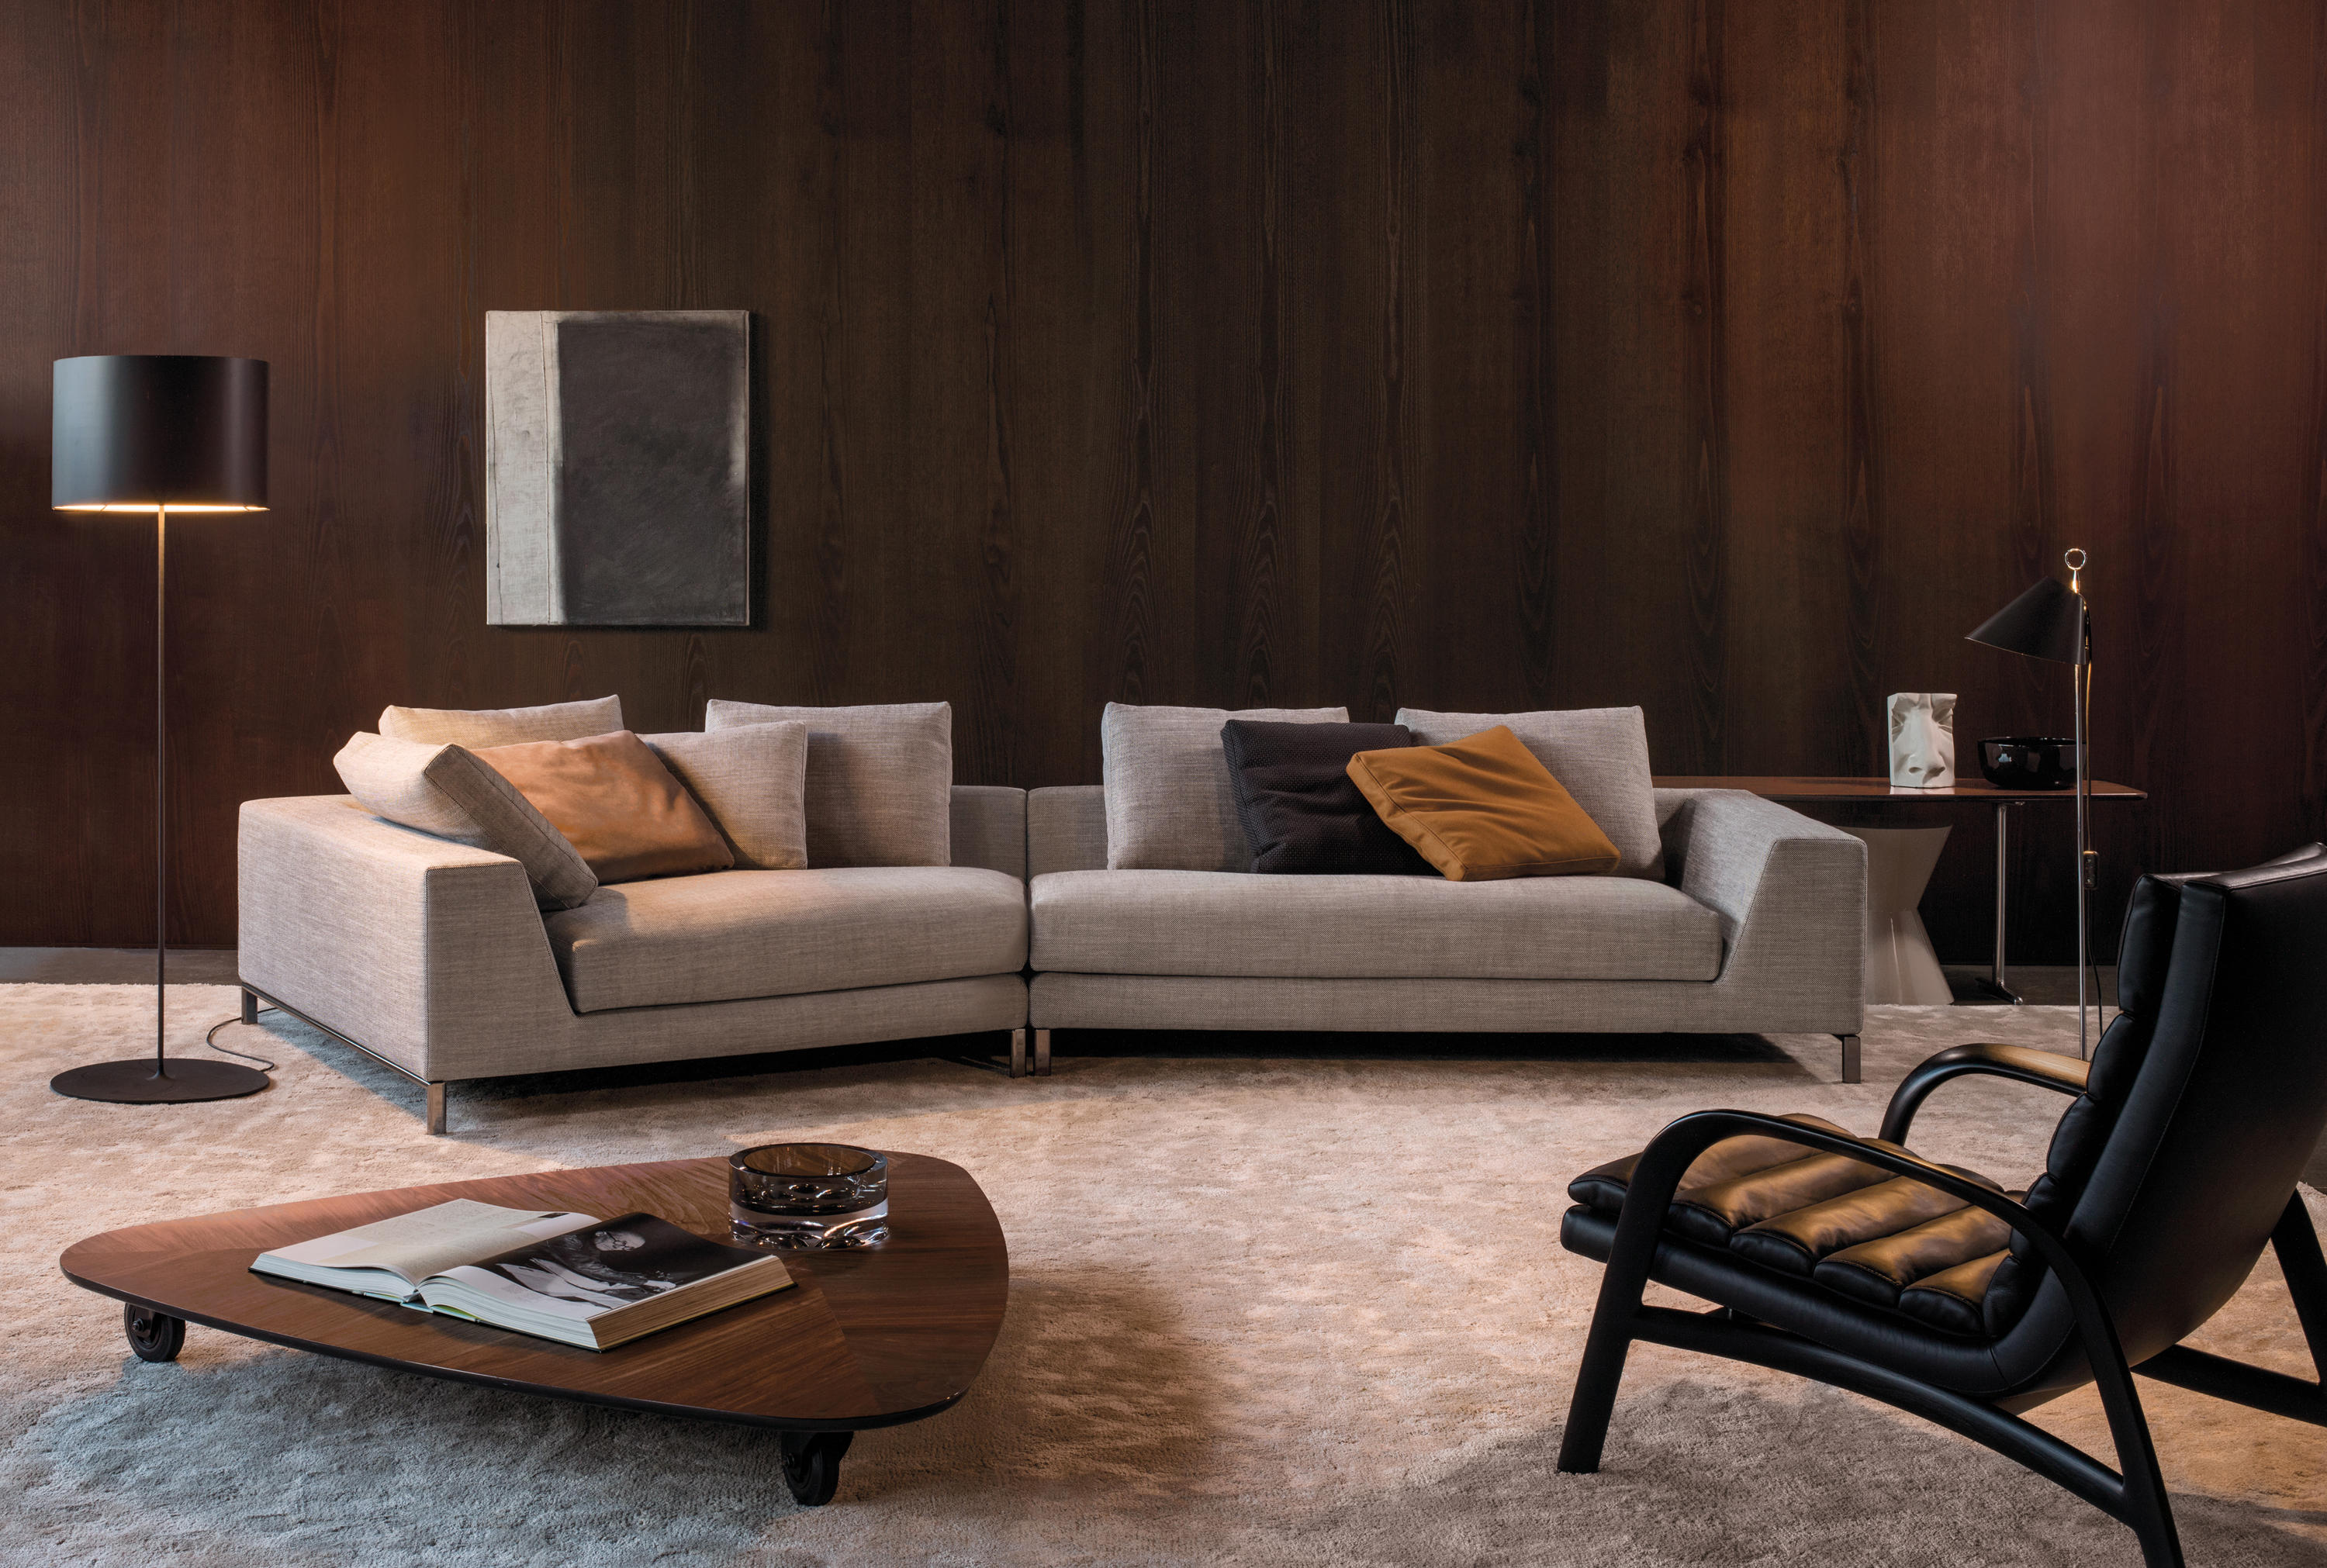 HAMILTON ISLANDS Lounge sofas from Minotti